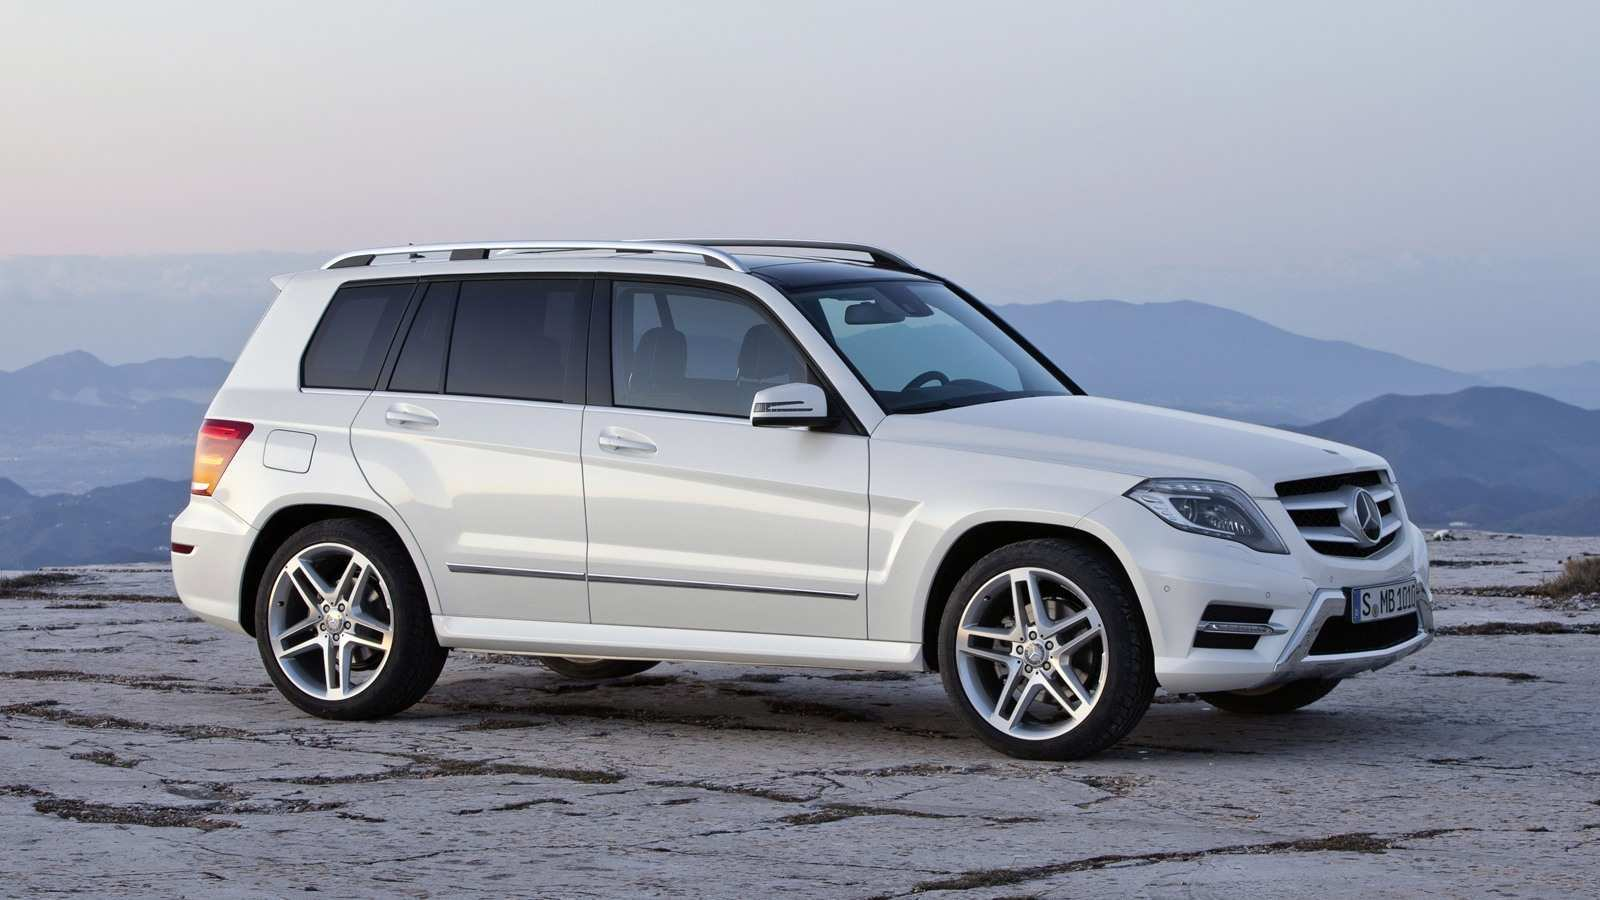 81 A 2020 Mercedes GLK Spy Shoot